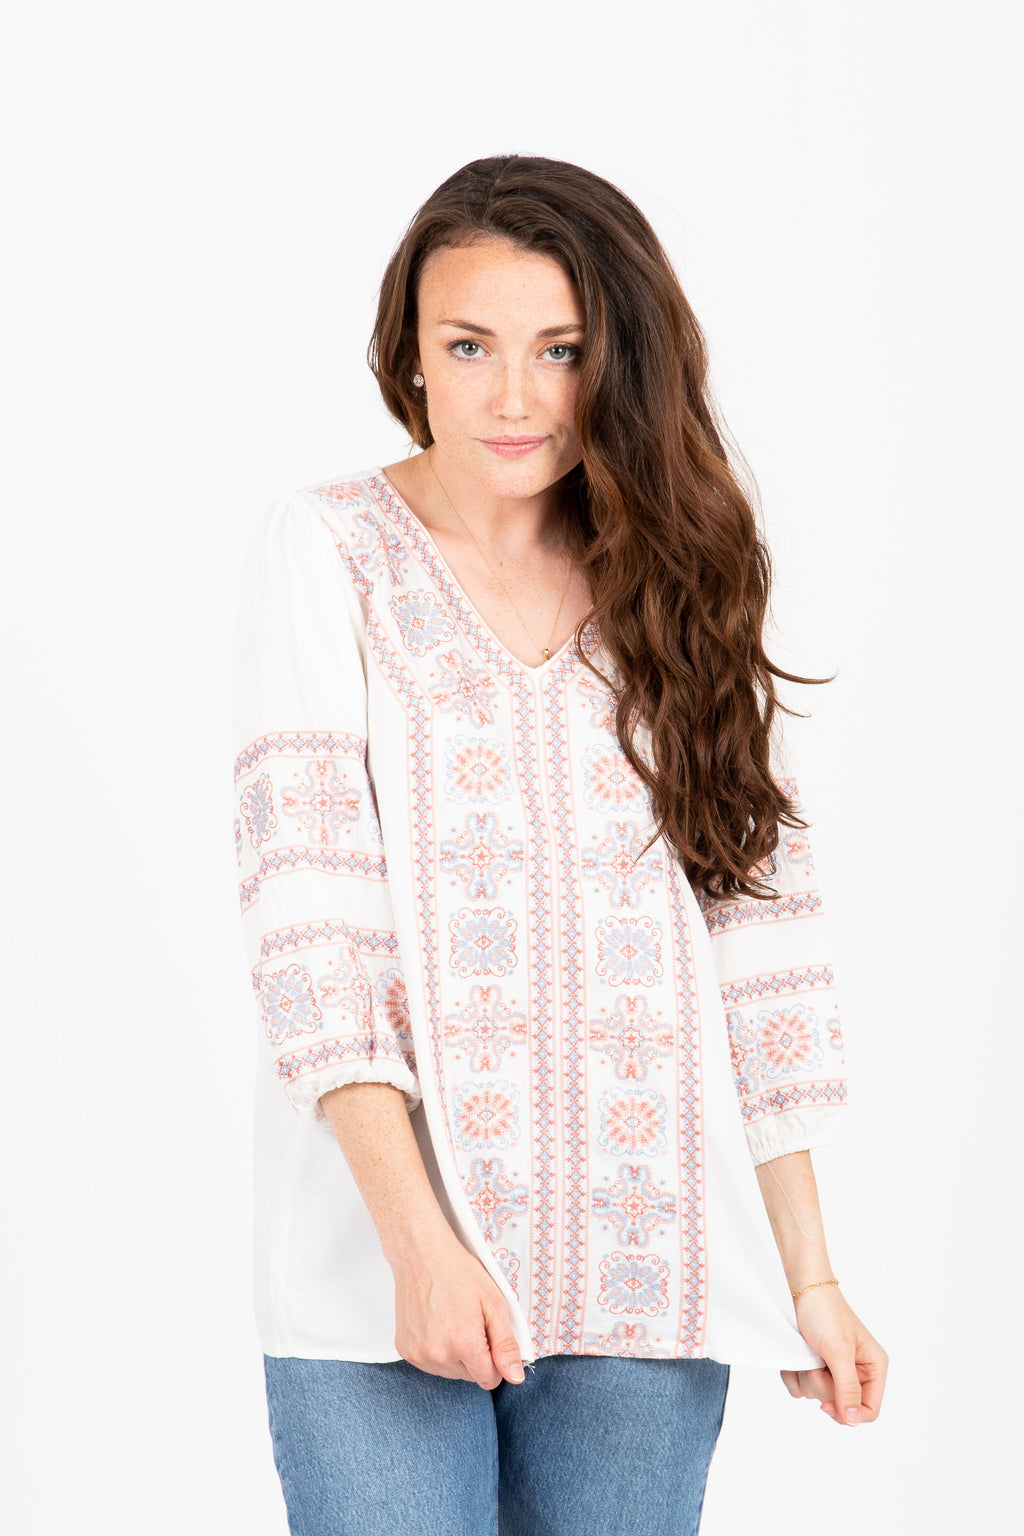 The Decisions Embroidered Blouse in Ivory